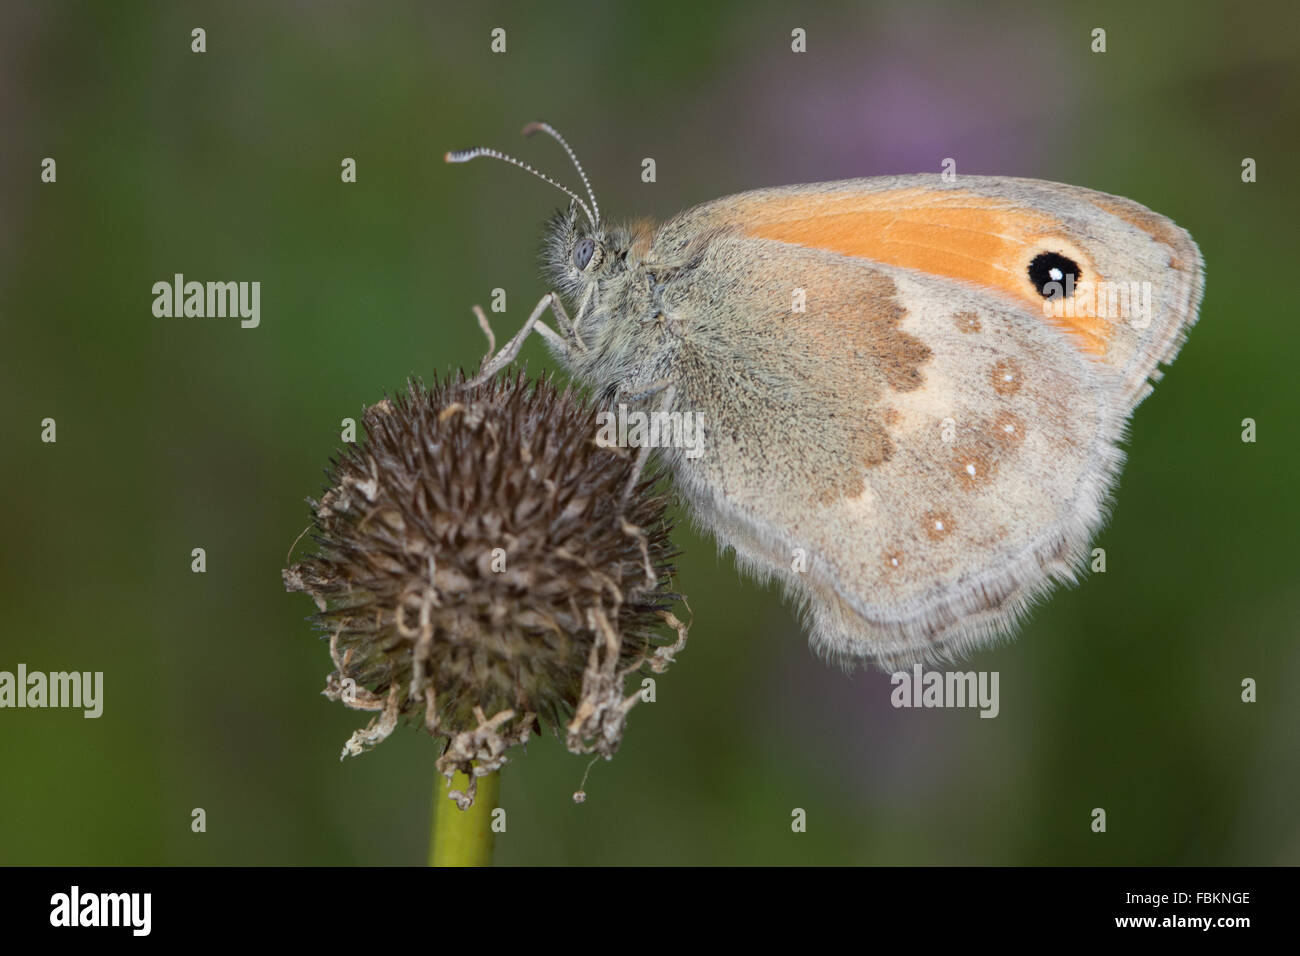 Small Heath (Coenonympha pamphilus) butterfly on a dead flower head - Stock Image